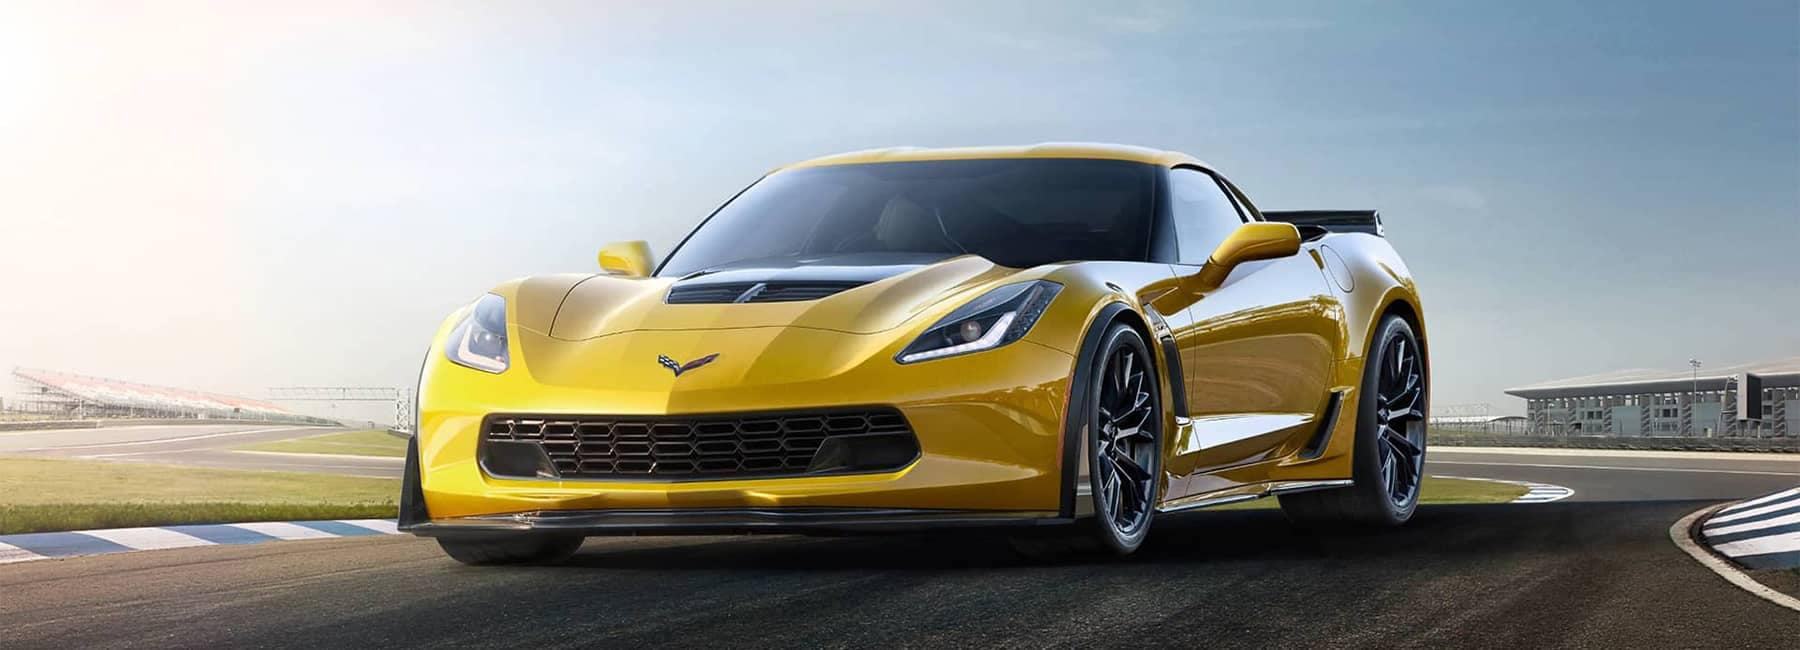 Yellow 2019 Corvette Z06 Exterior Angled View on Track